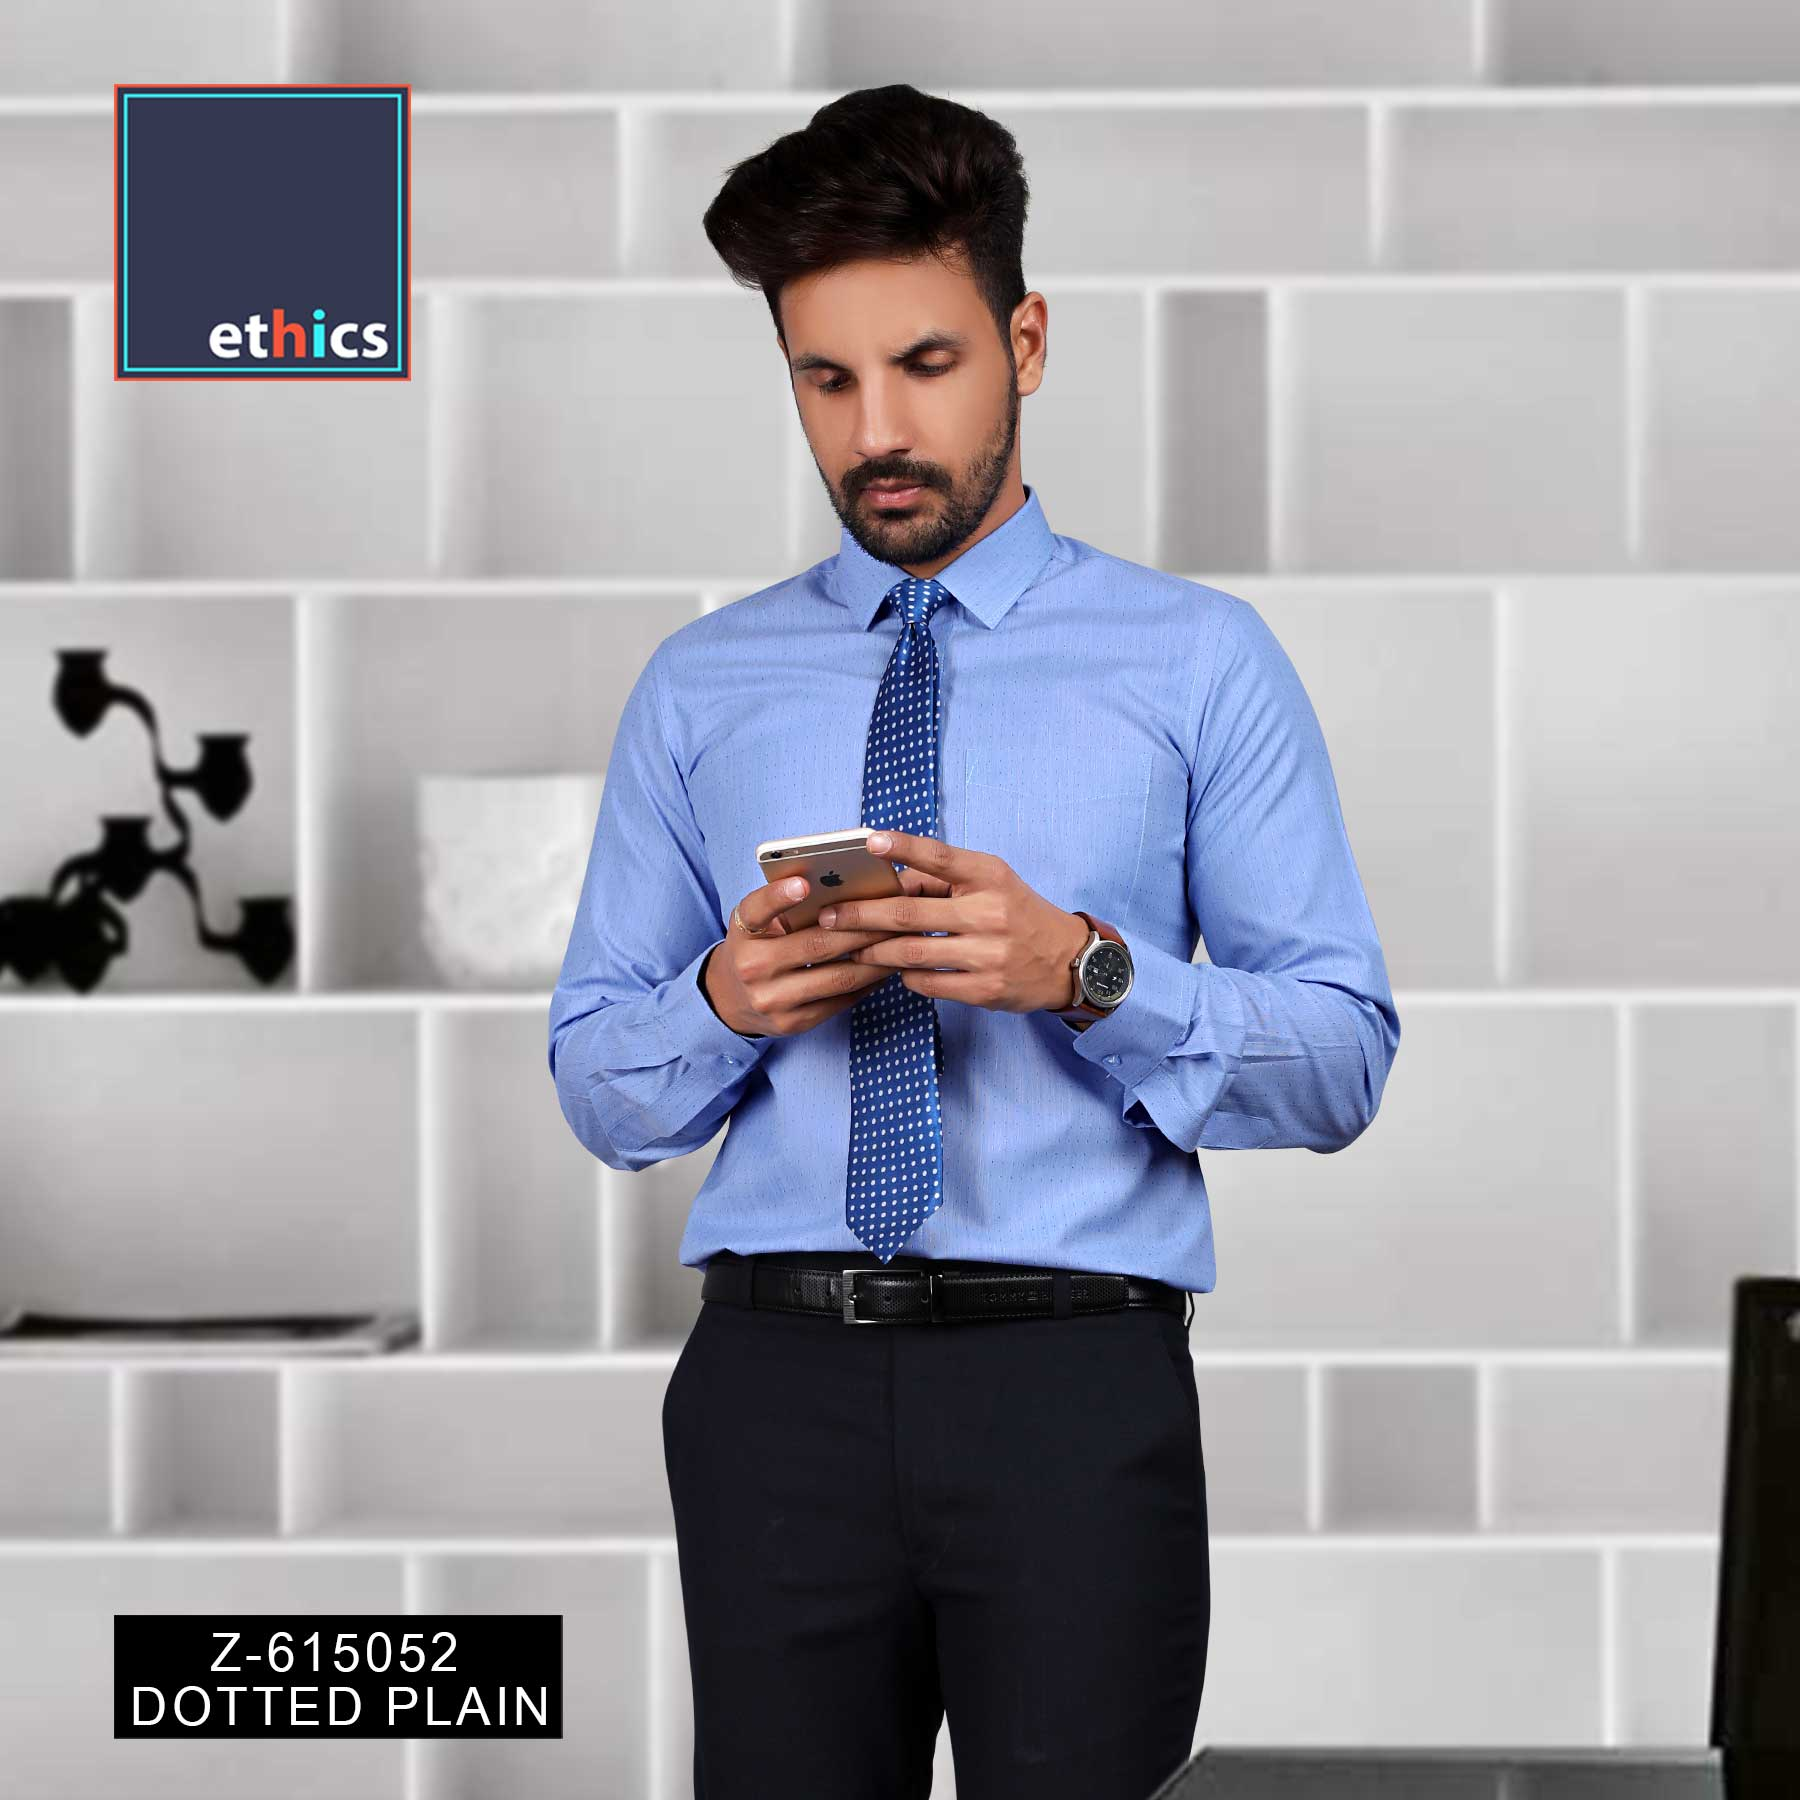 Dotted Blue Men's Corporate Uniform Shirts for Industrial Workforce